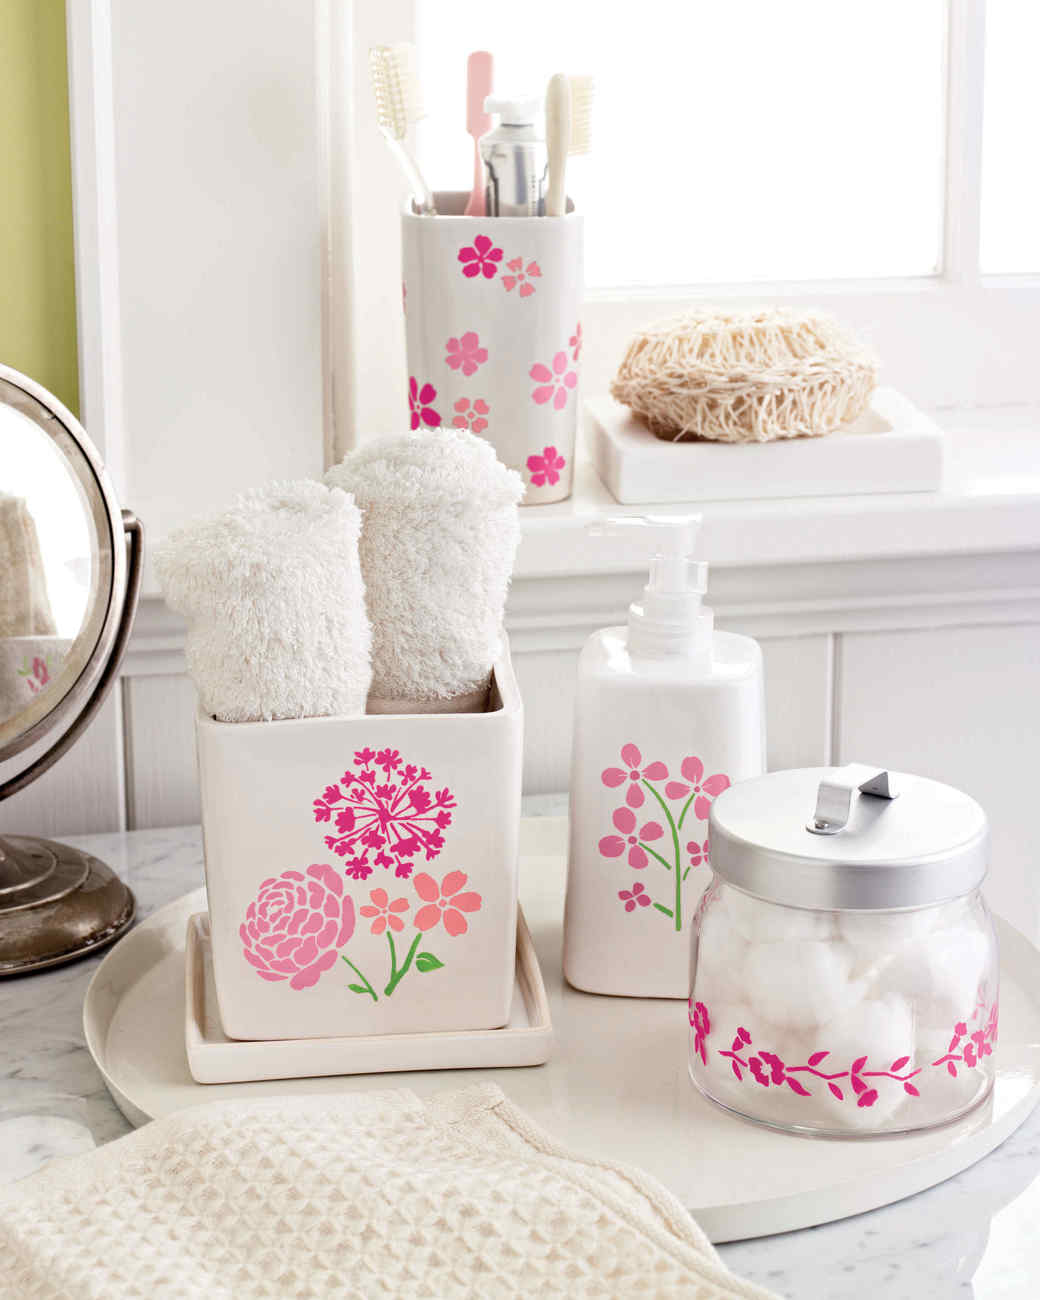 stenciled countertop containers